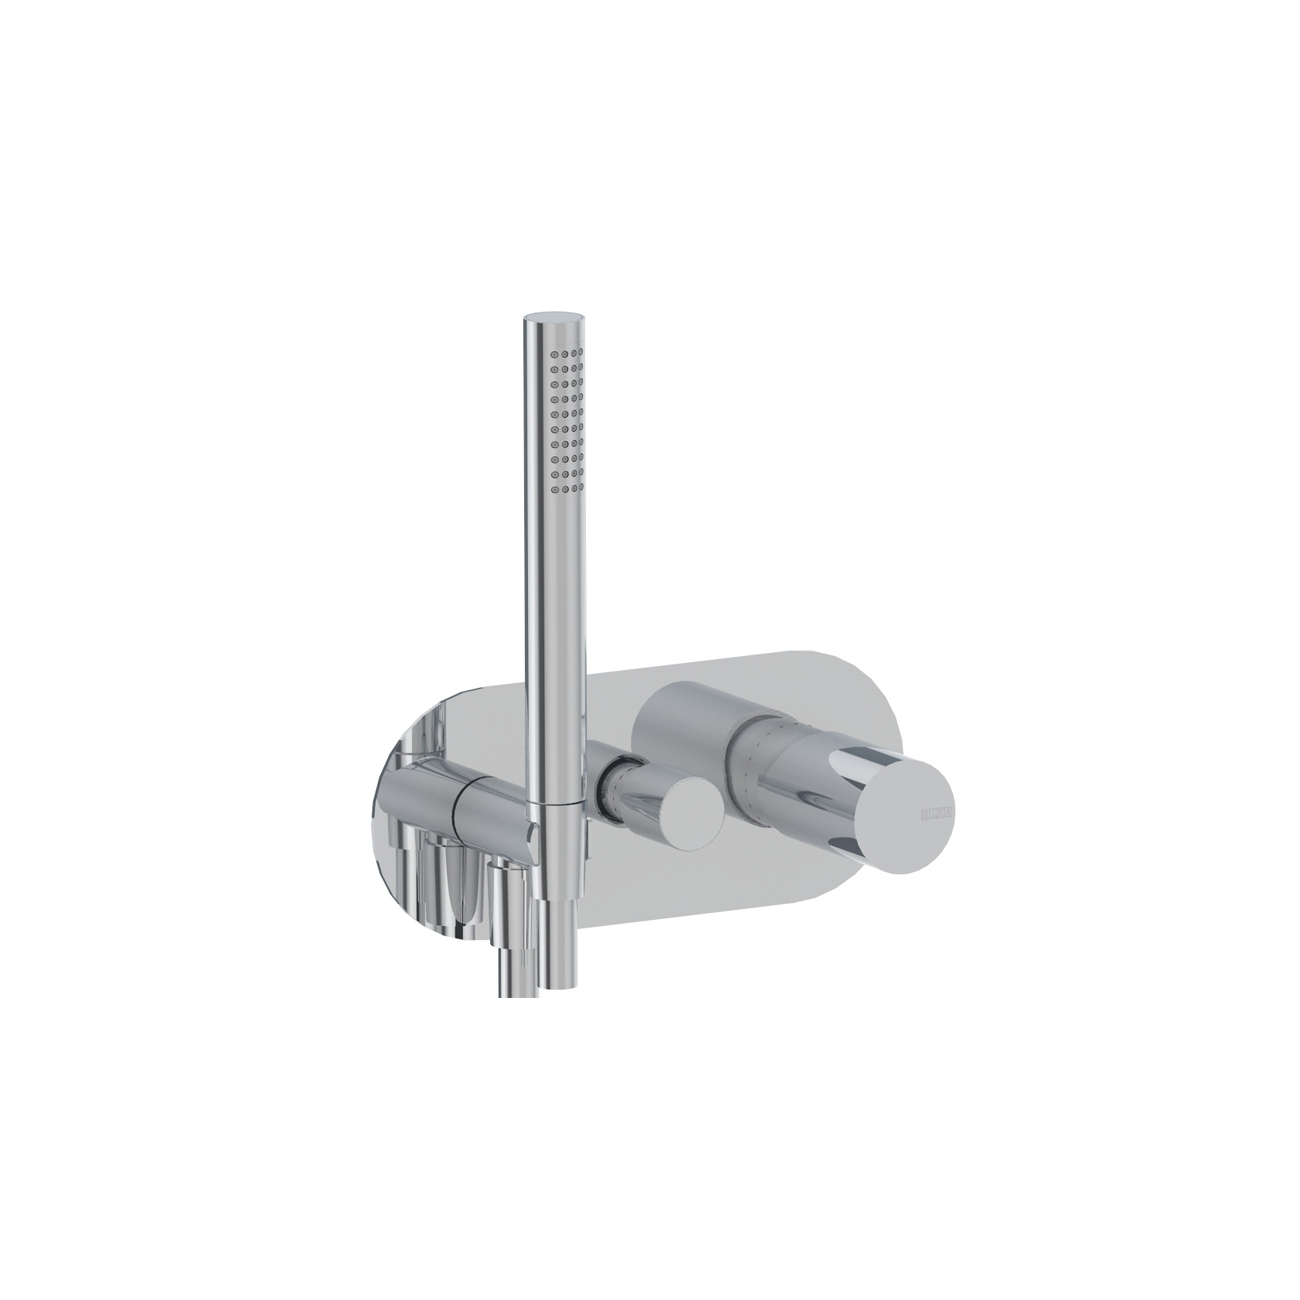 BELLOSTA LUDO WALL MOUNTED BATH MIXER 7300/1/P